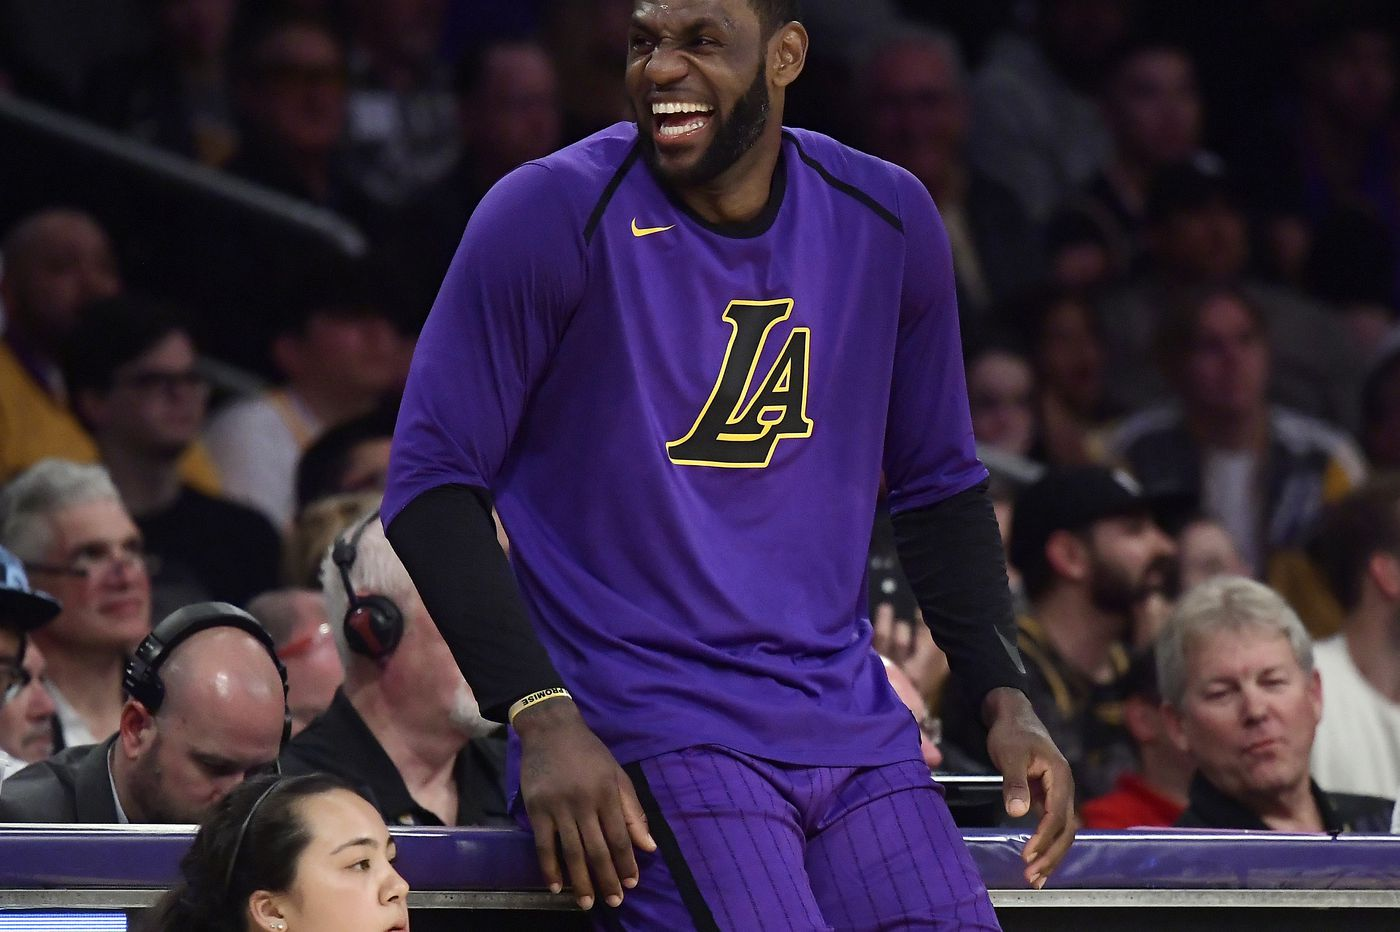 e140f88aaed LeBron James to sit out rest of the season